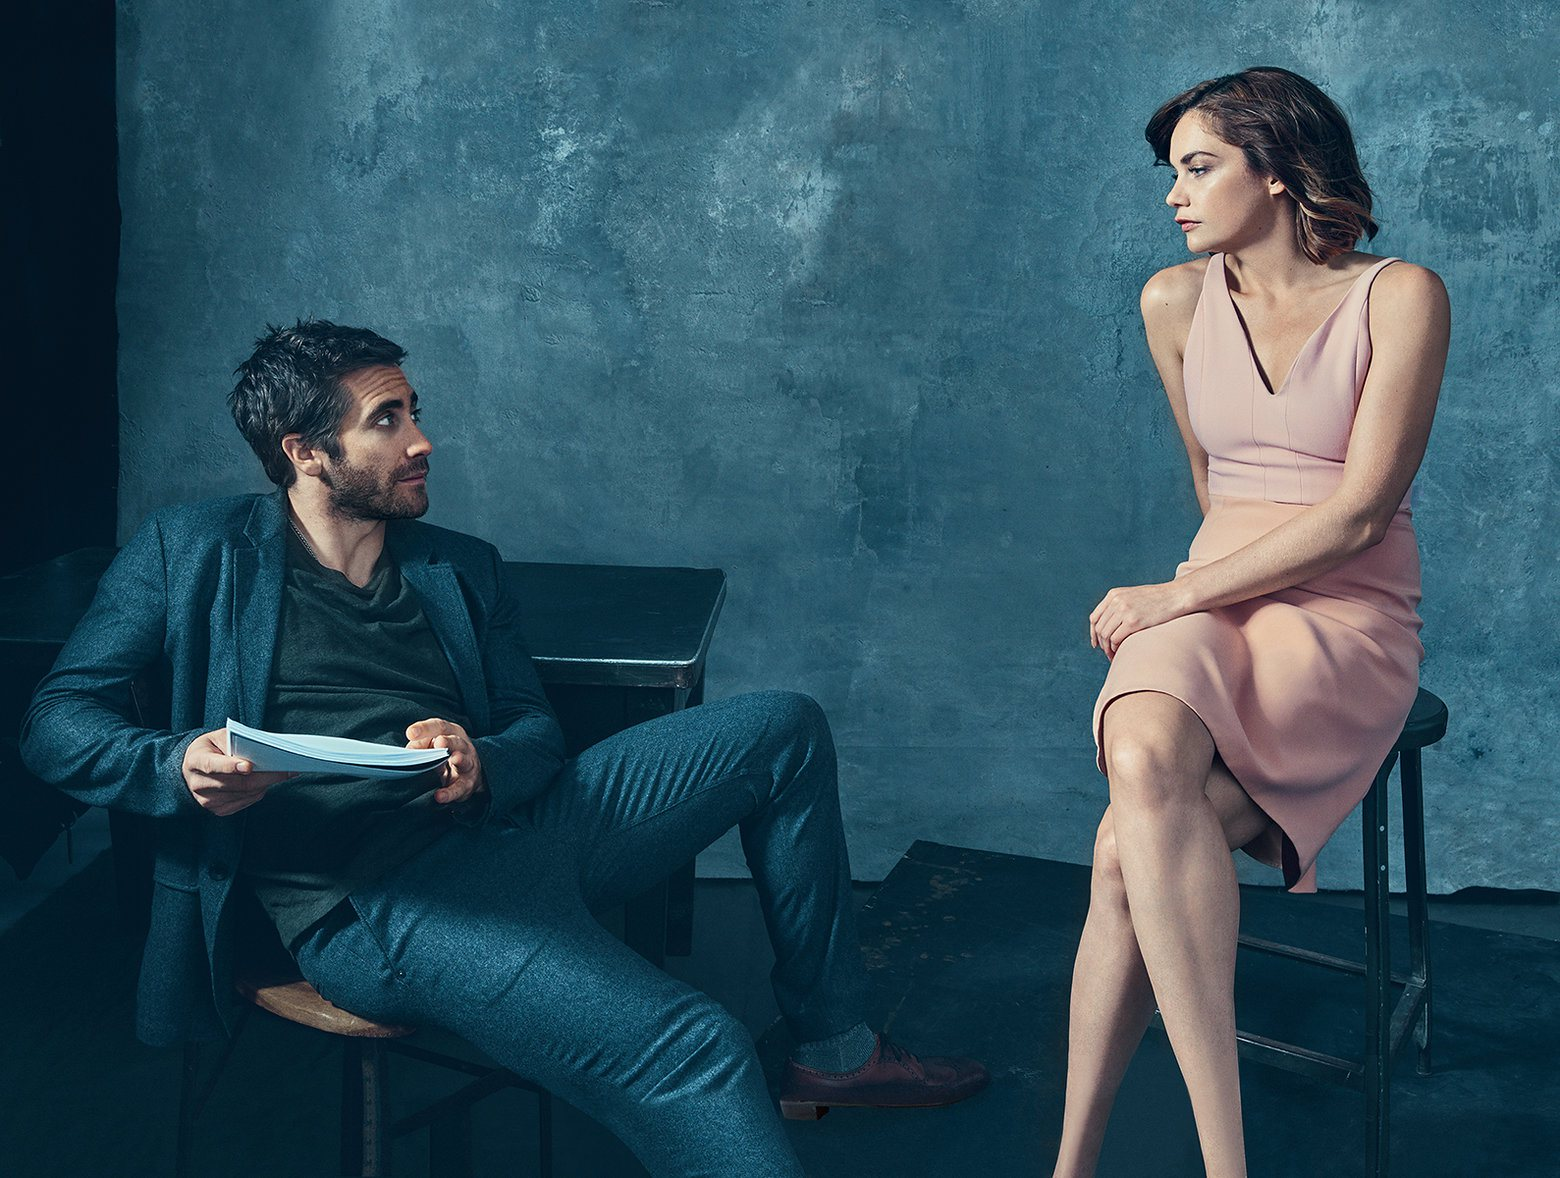 Promoting his stint on broadway in Constellations, actor Jake Gyllenhaal joins Ruth Wilson for a photo in the January 2015 issue of Vogue. Photographed by Norman Jean Roy, Gyllenhaal is pictured in a GAP t-shirt, paired with a Rag & Bone suit.